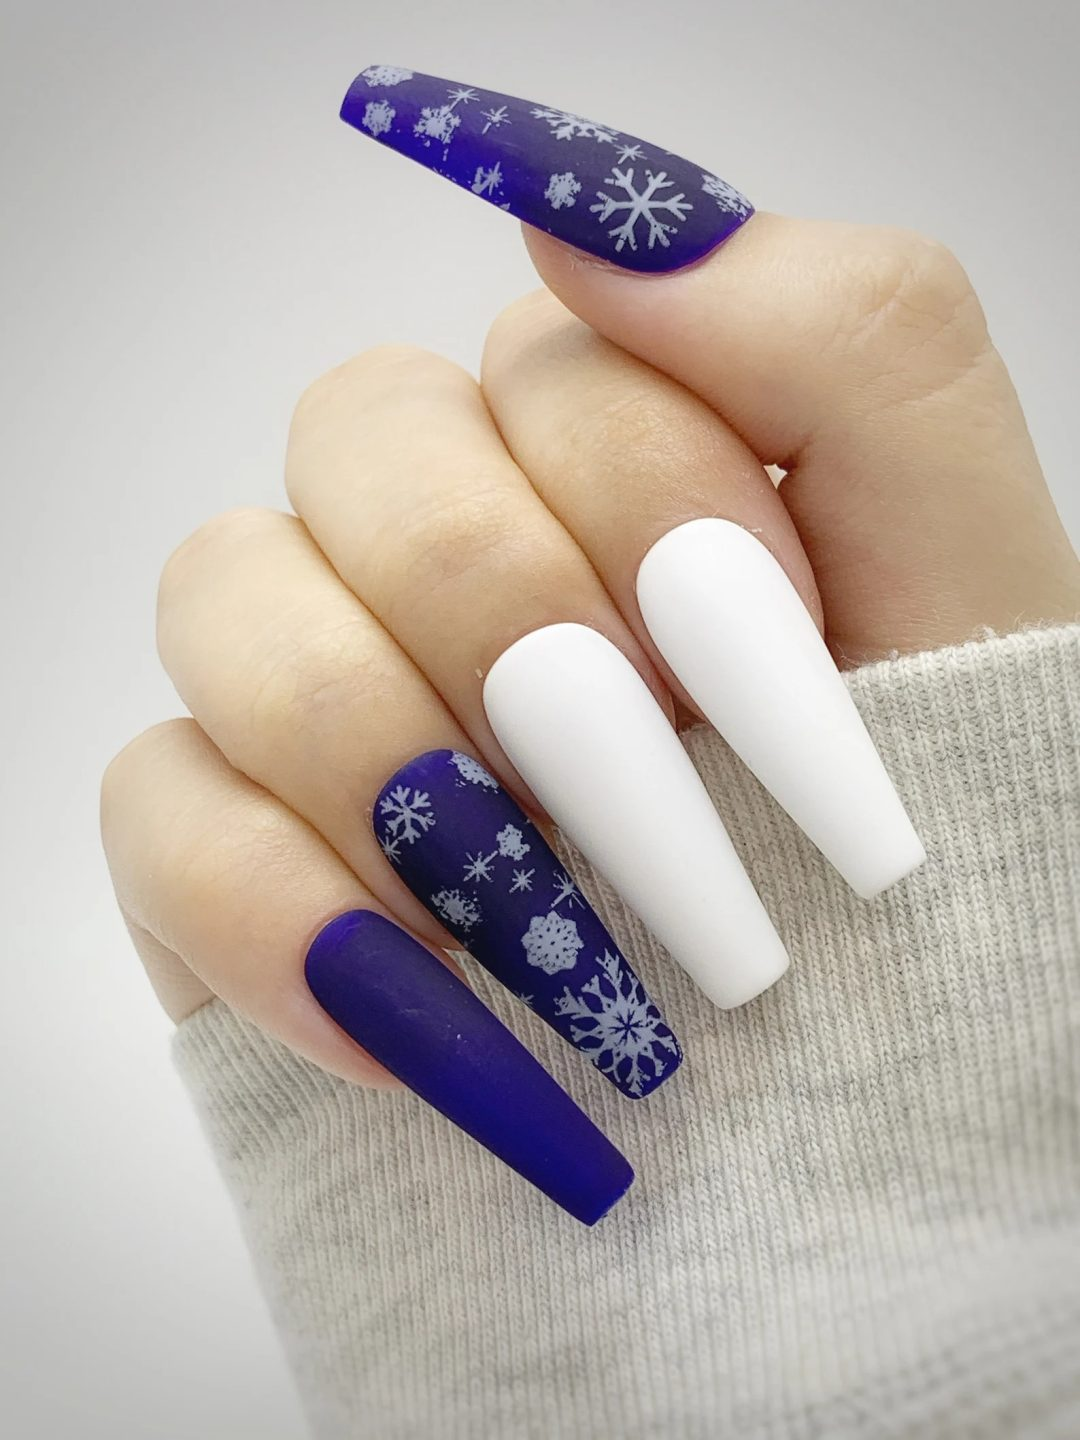 White and blue snowflake nails